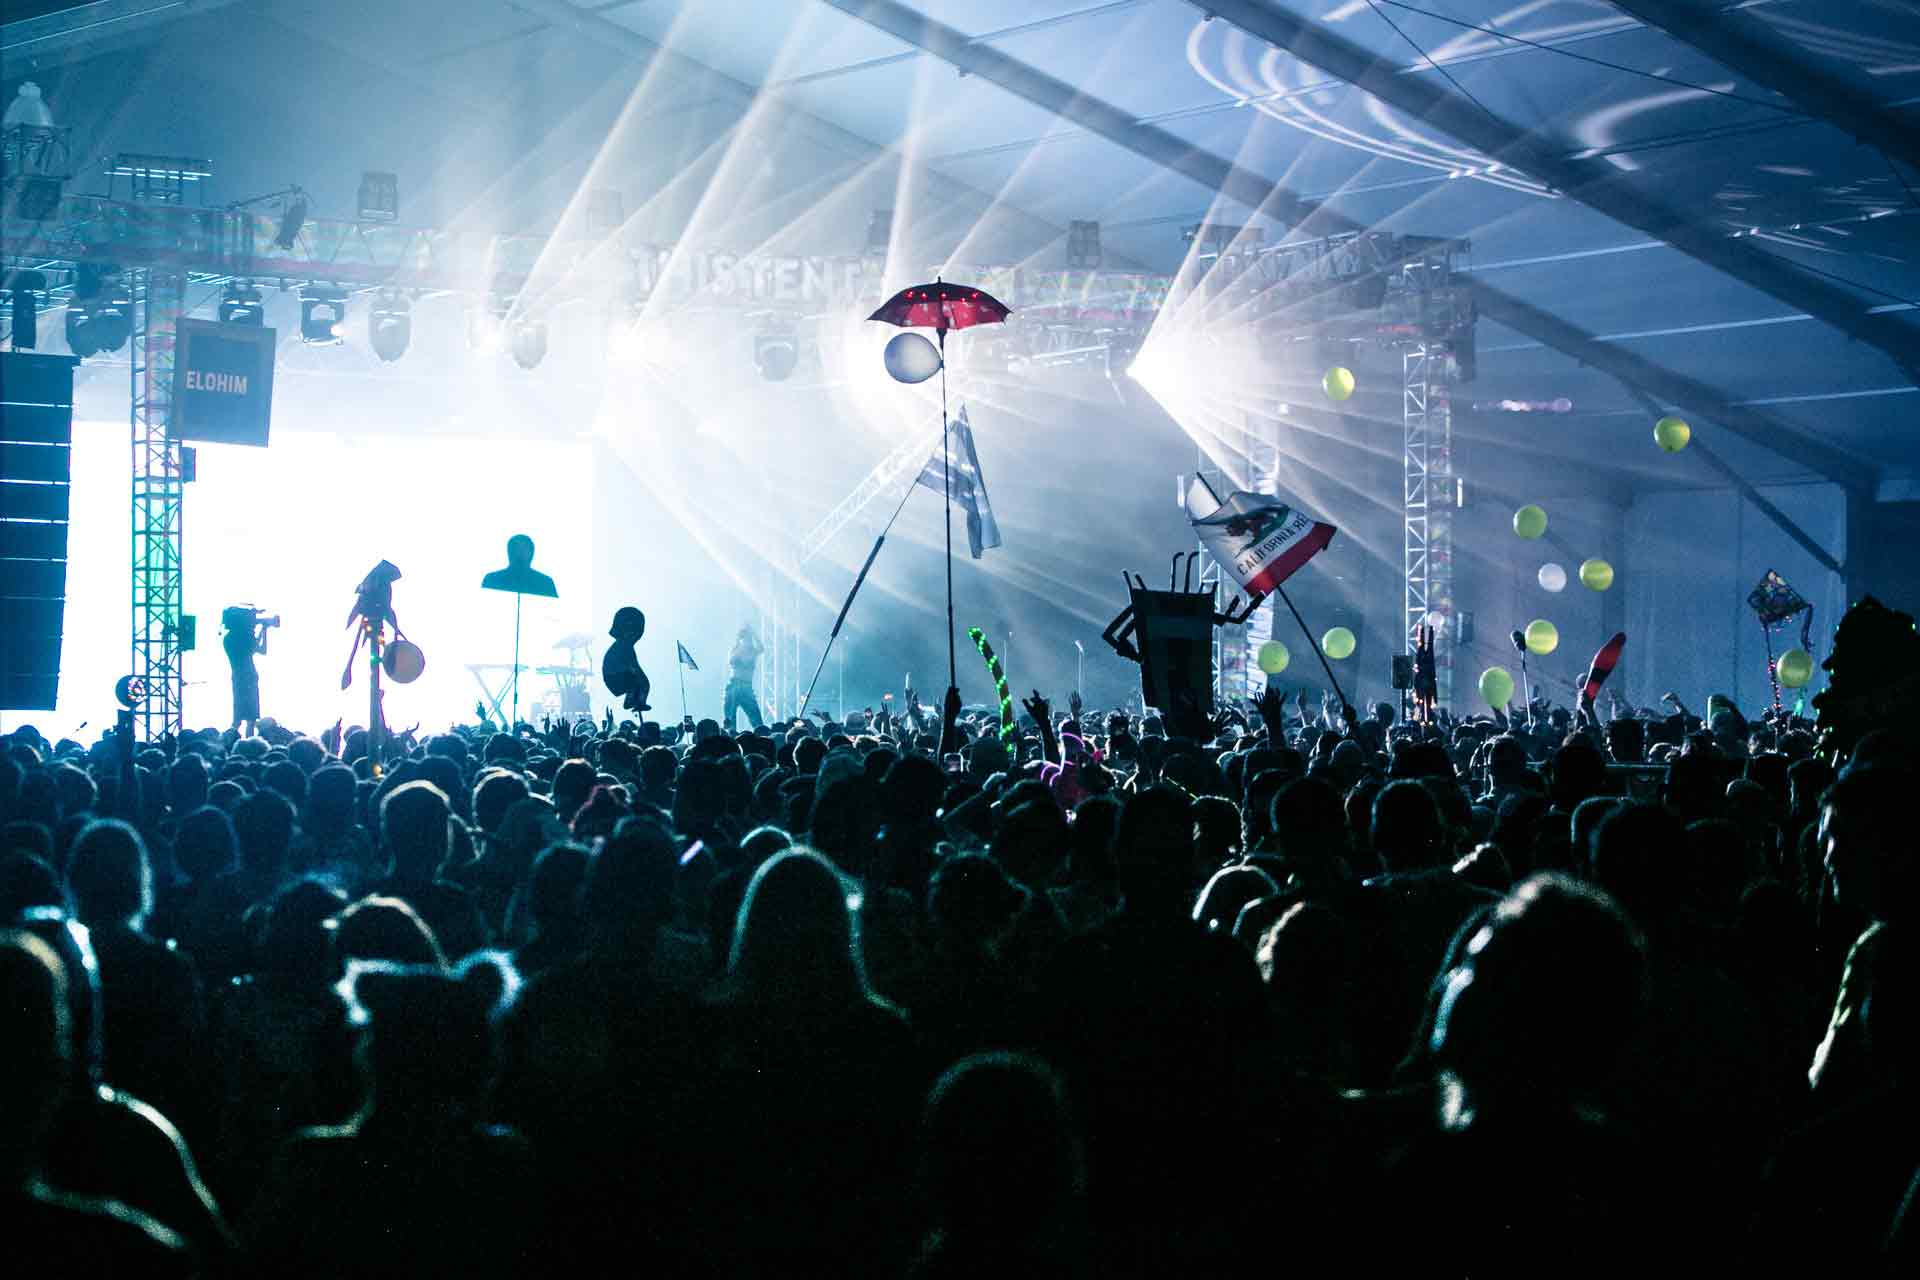 people-on-concert-1179581